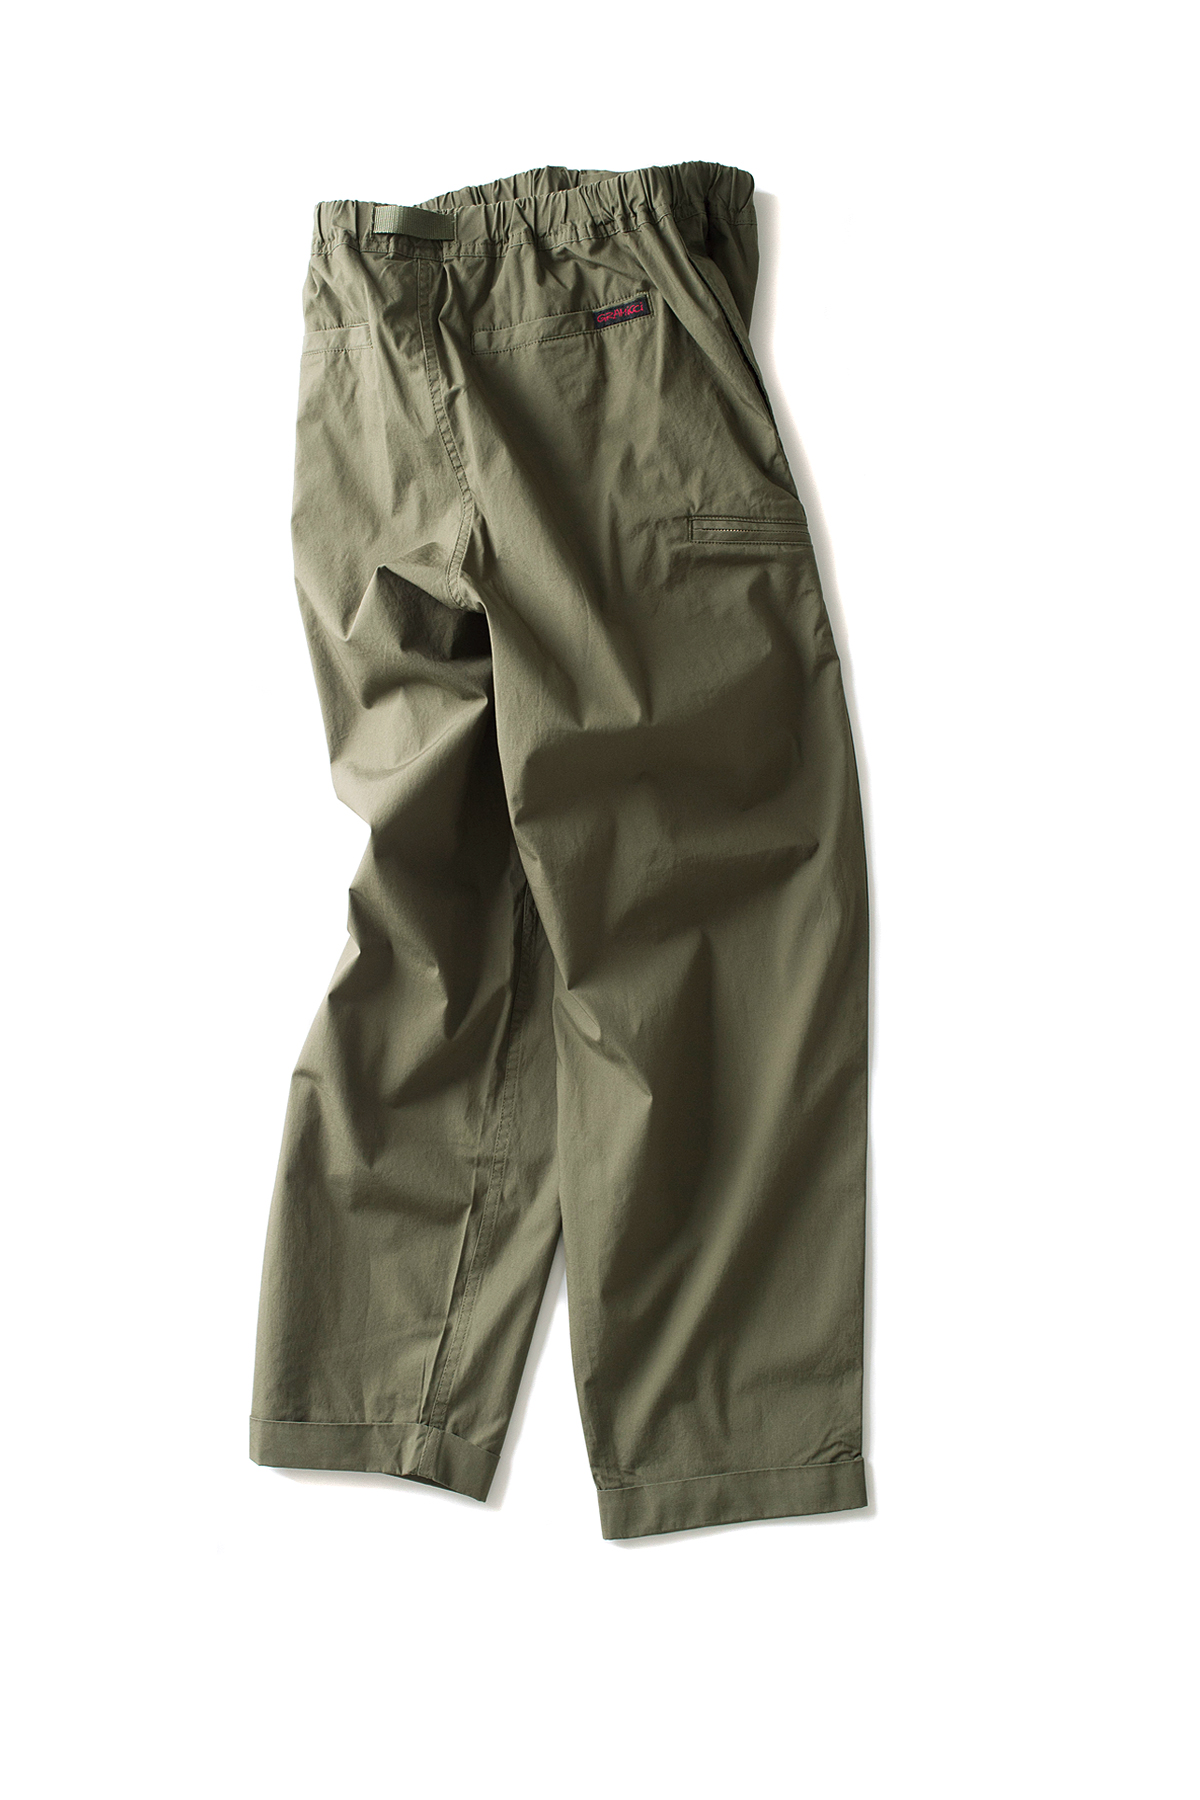 Gramicci : Weather Resort Pants (Olive)